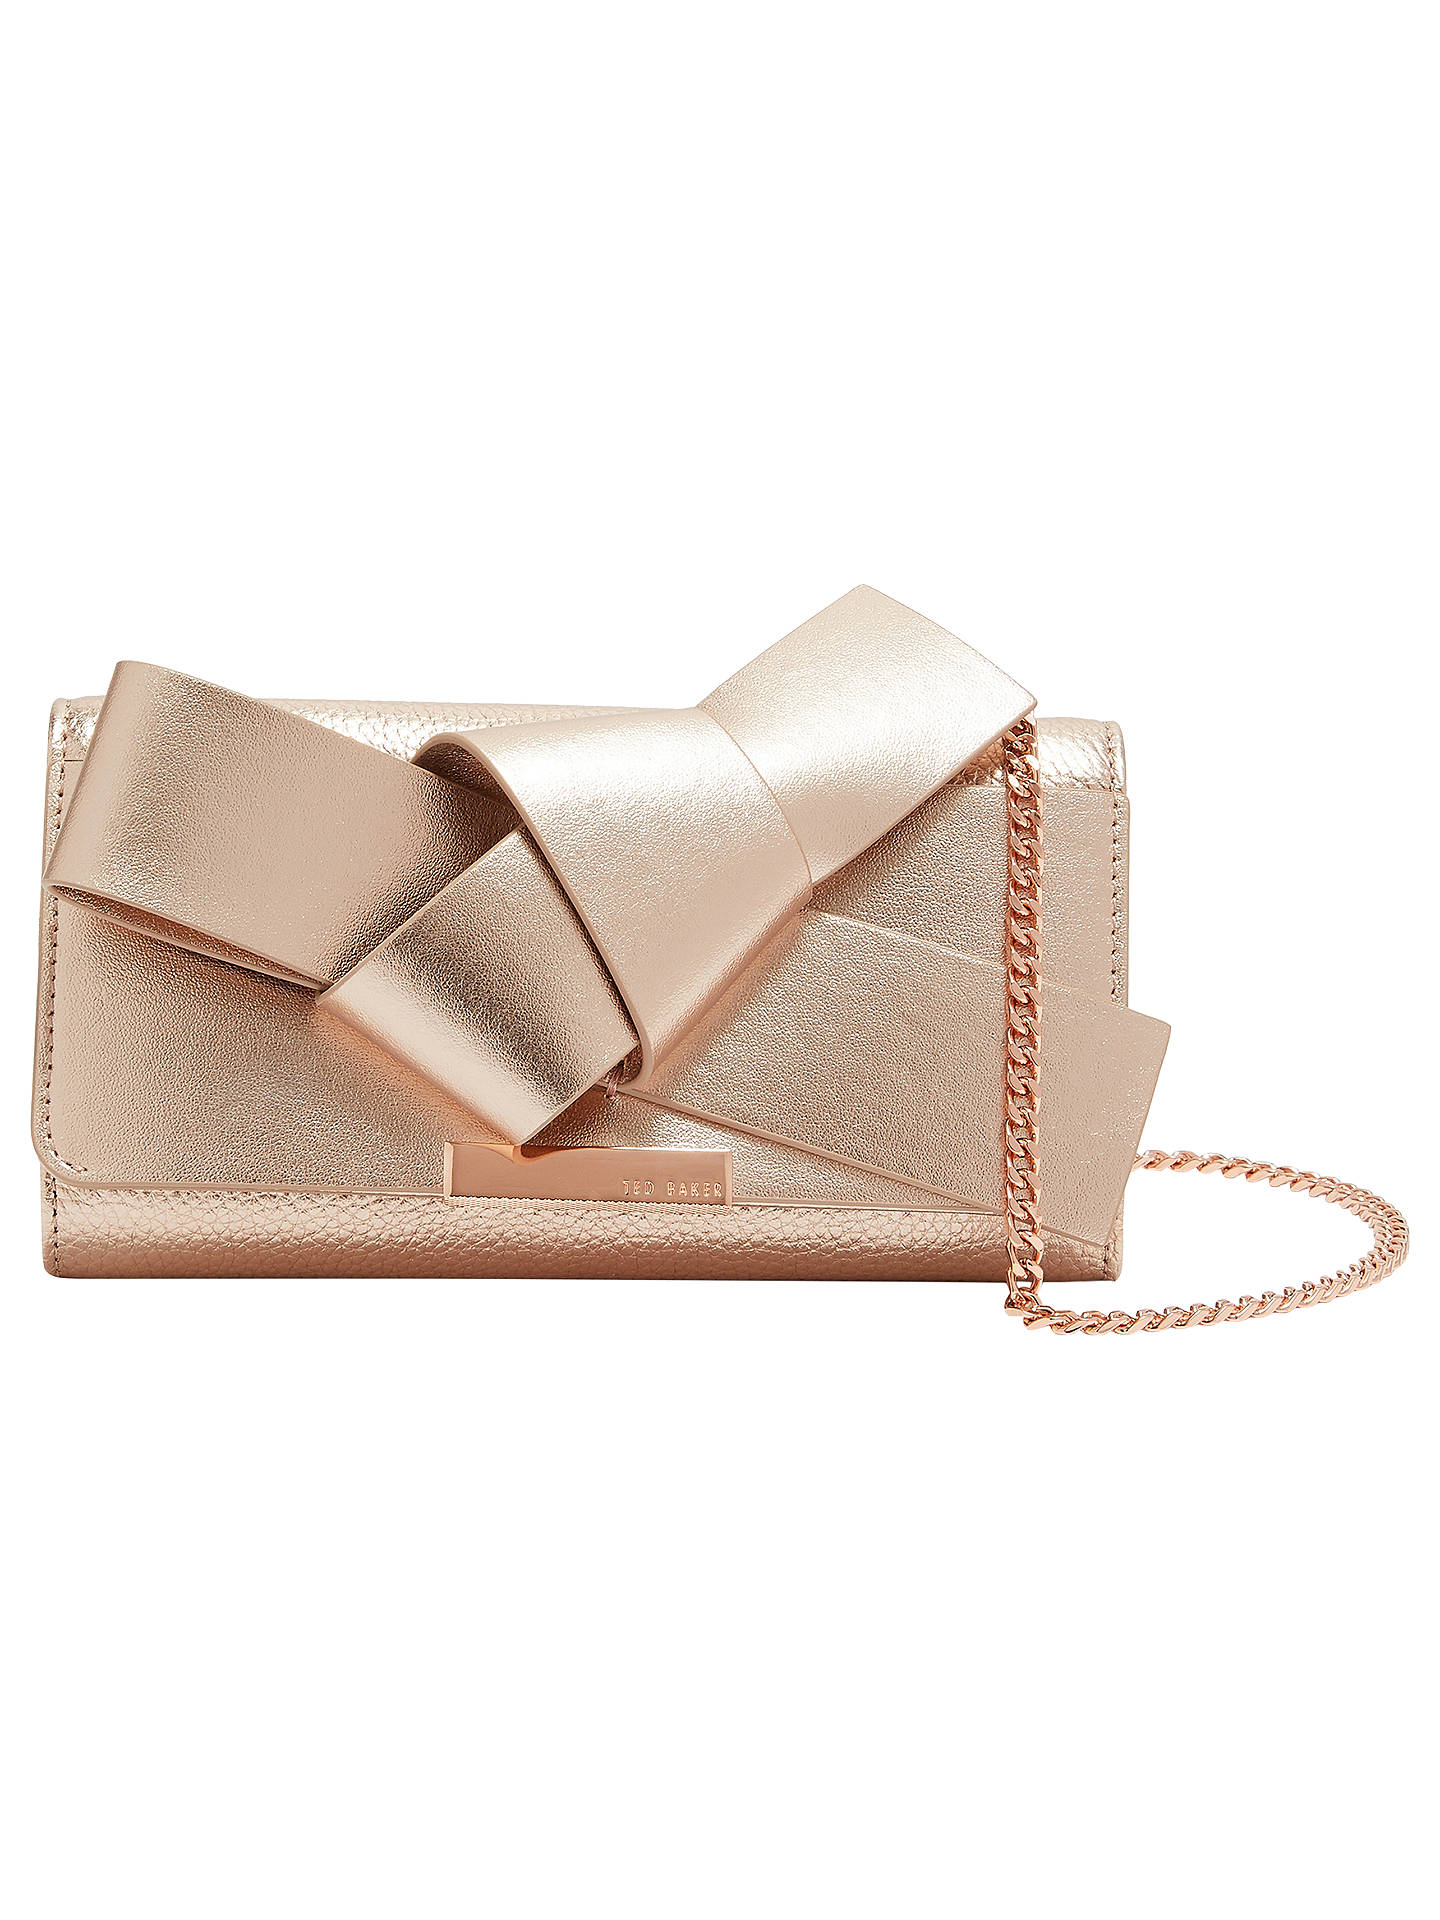 2f68a0530e7 Buy Ted Baker Lyle Giant Knot Bow Leather Evening Bag, Rose Gold Online at  johnlewis ...